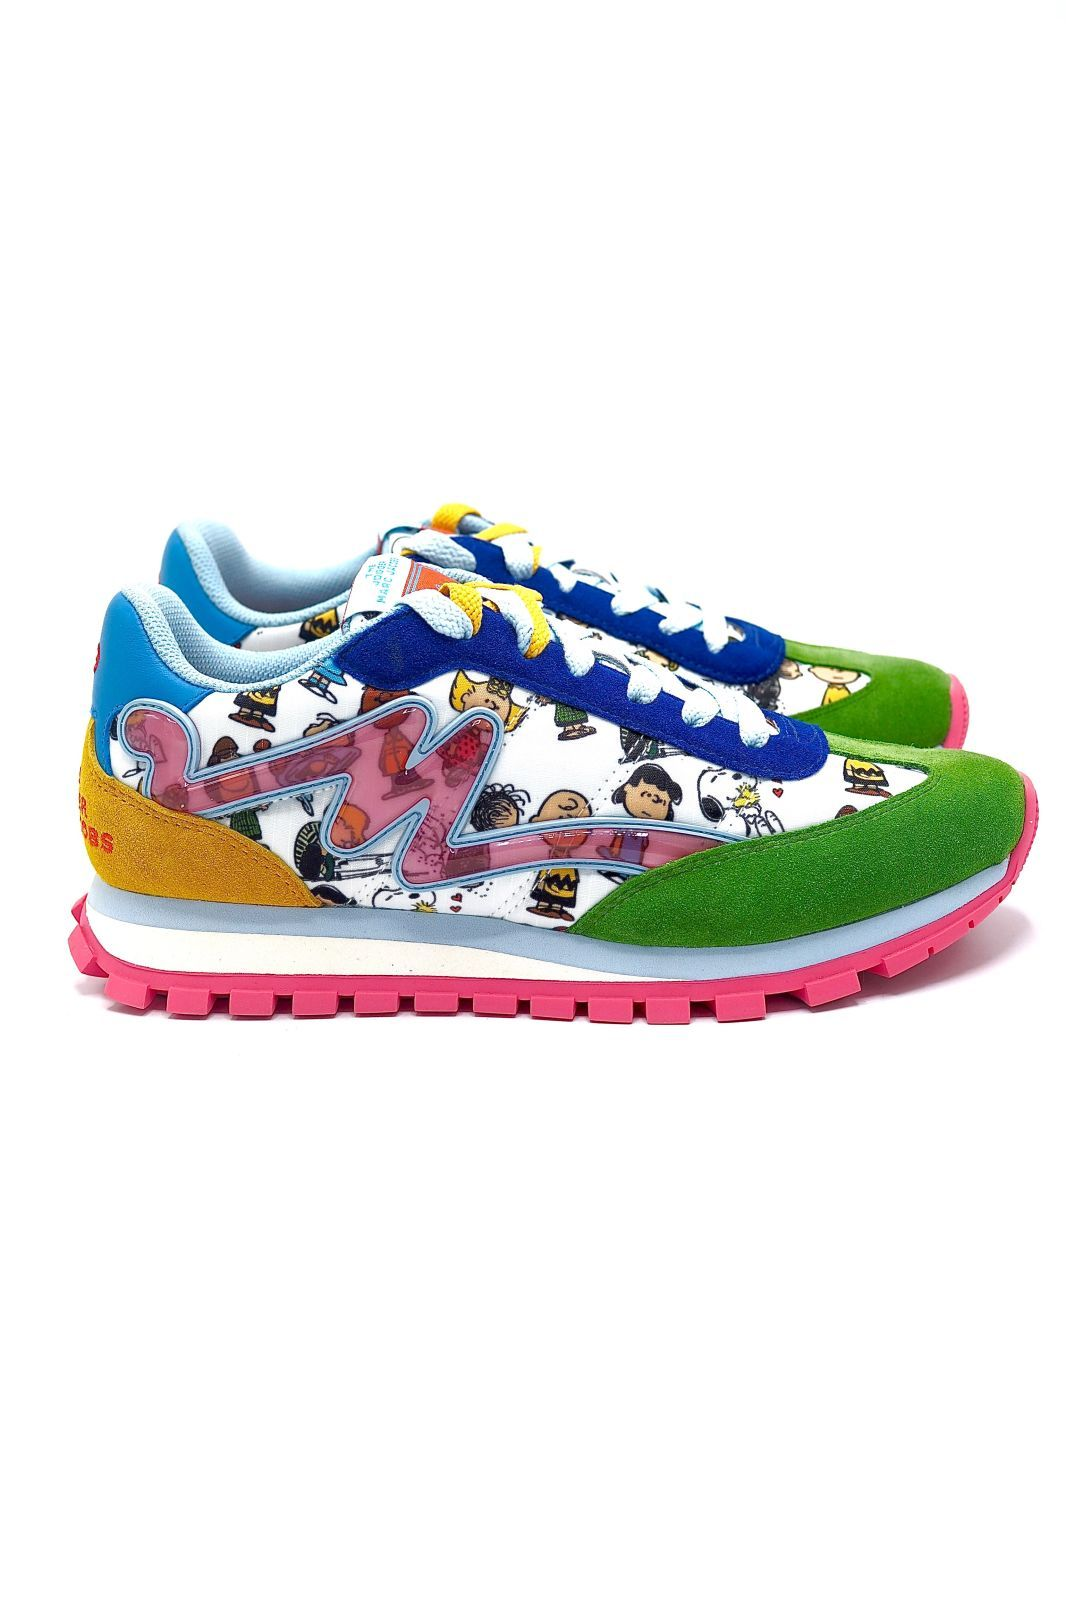 Marc Jacobs basket bas Multicolor femmes (MJACOBS-Runner  - THE JOGGER Peanuts) - Marine | Much more than shoes